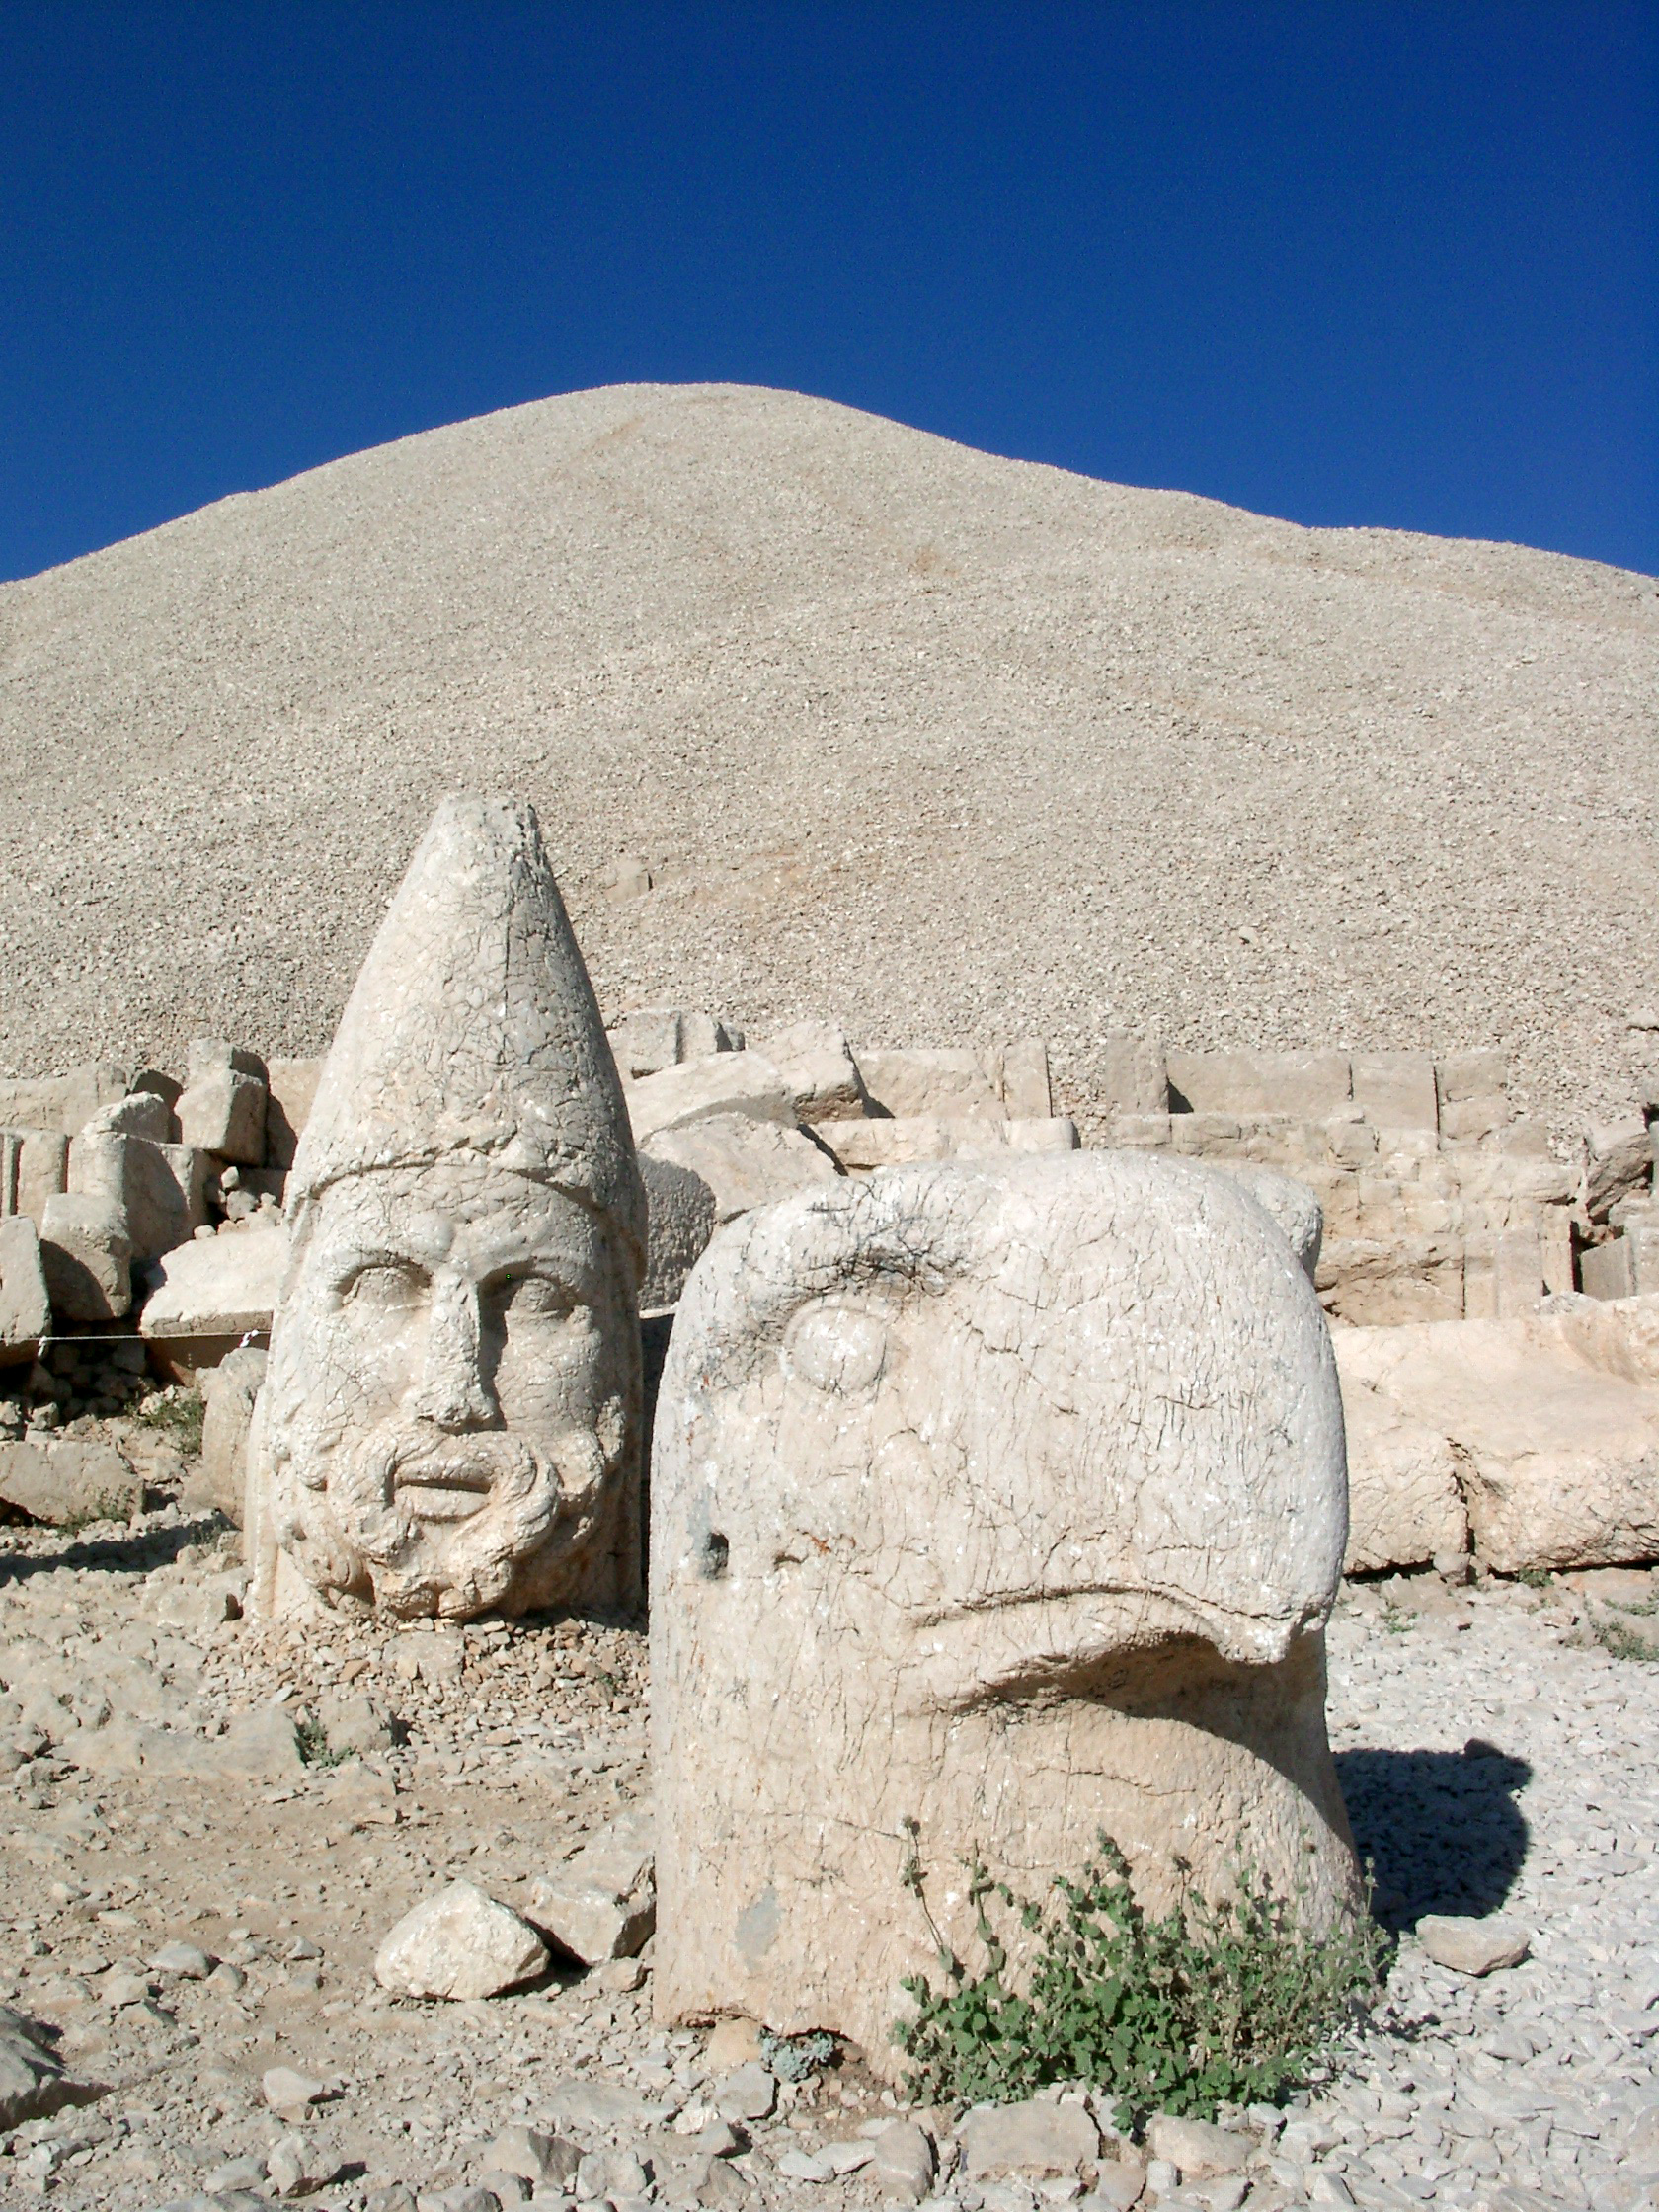 http://upload.wikimedia.org/wikipedia/commons/a/ad/Mount_Nemrut.jpg